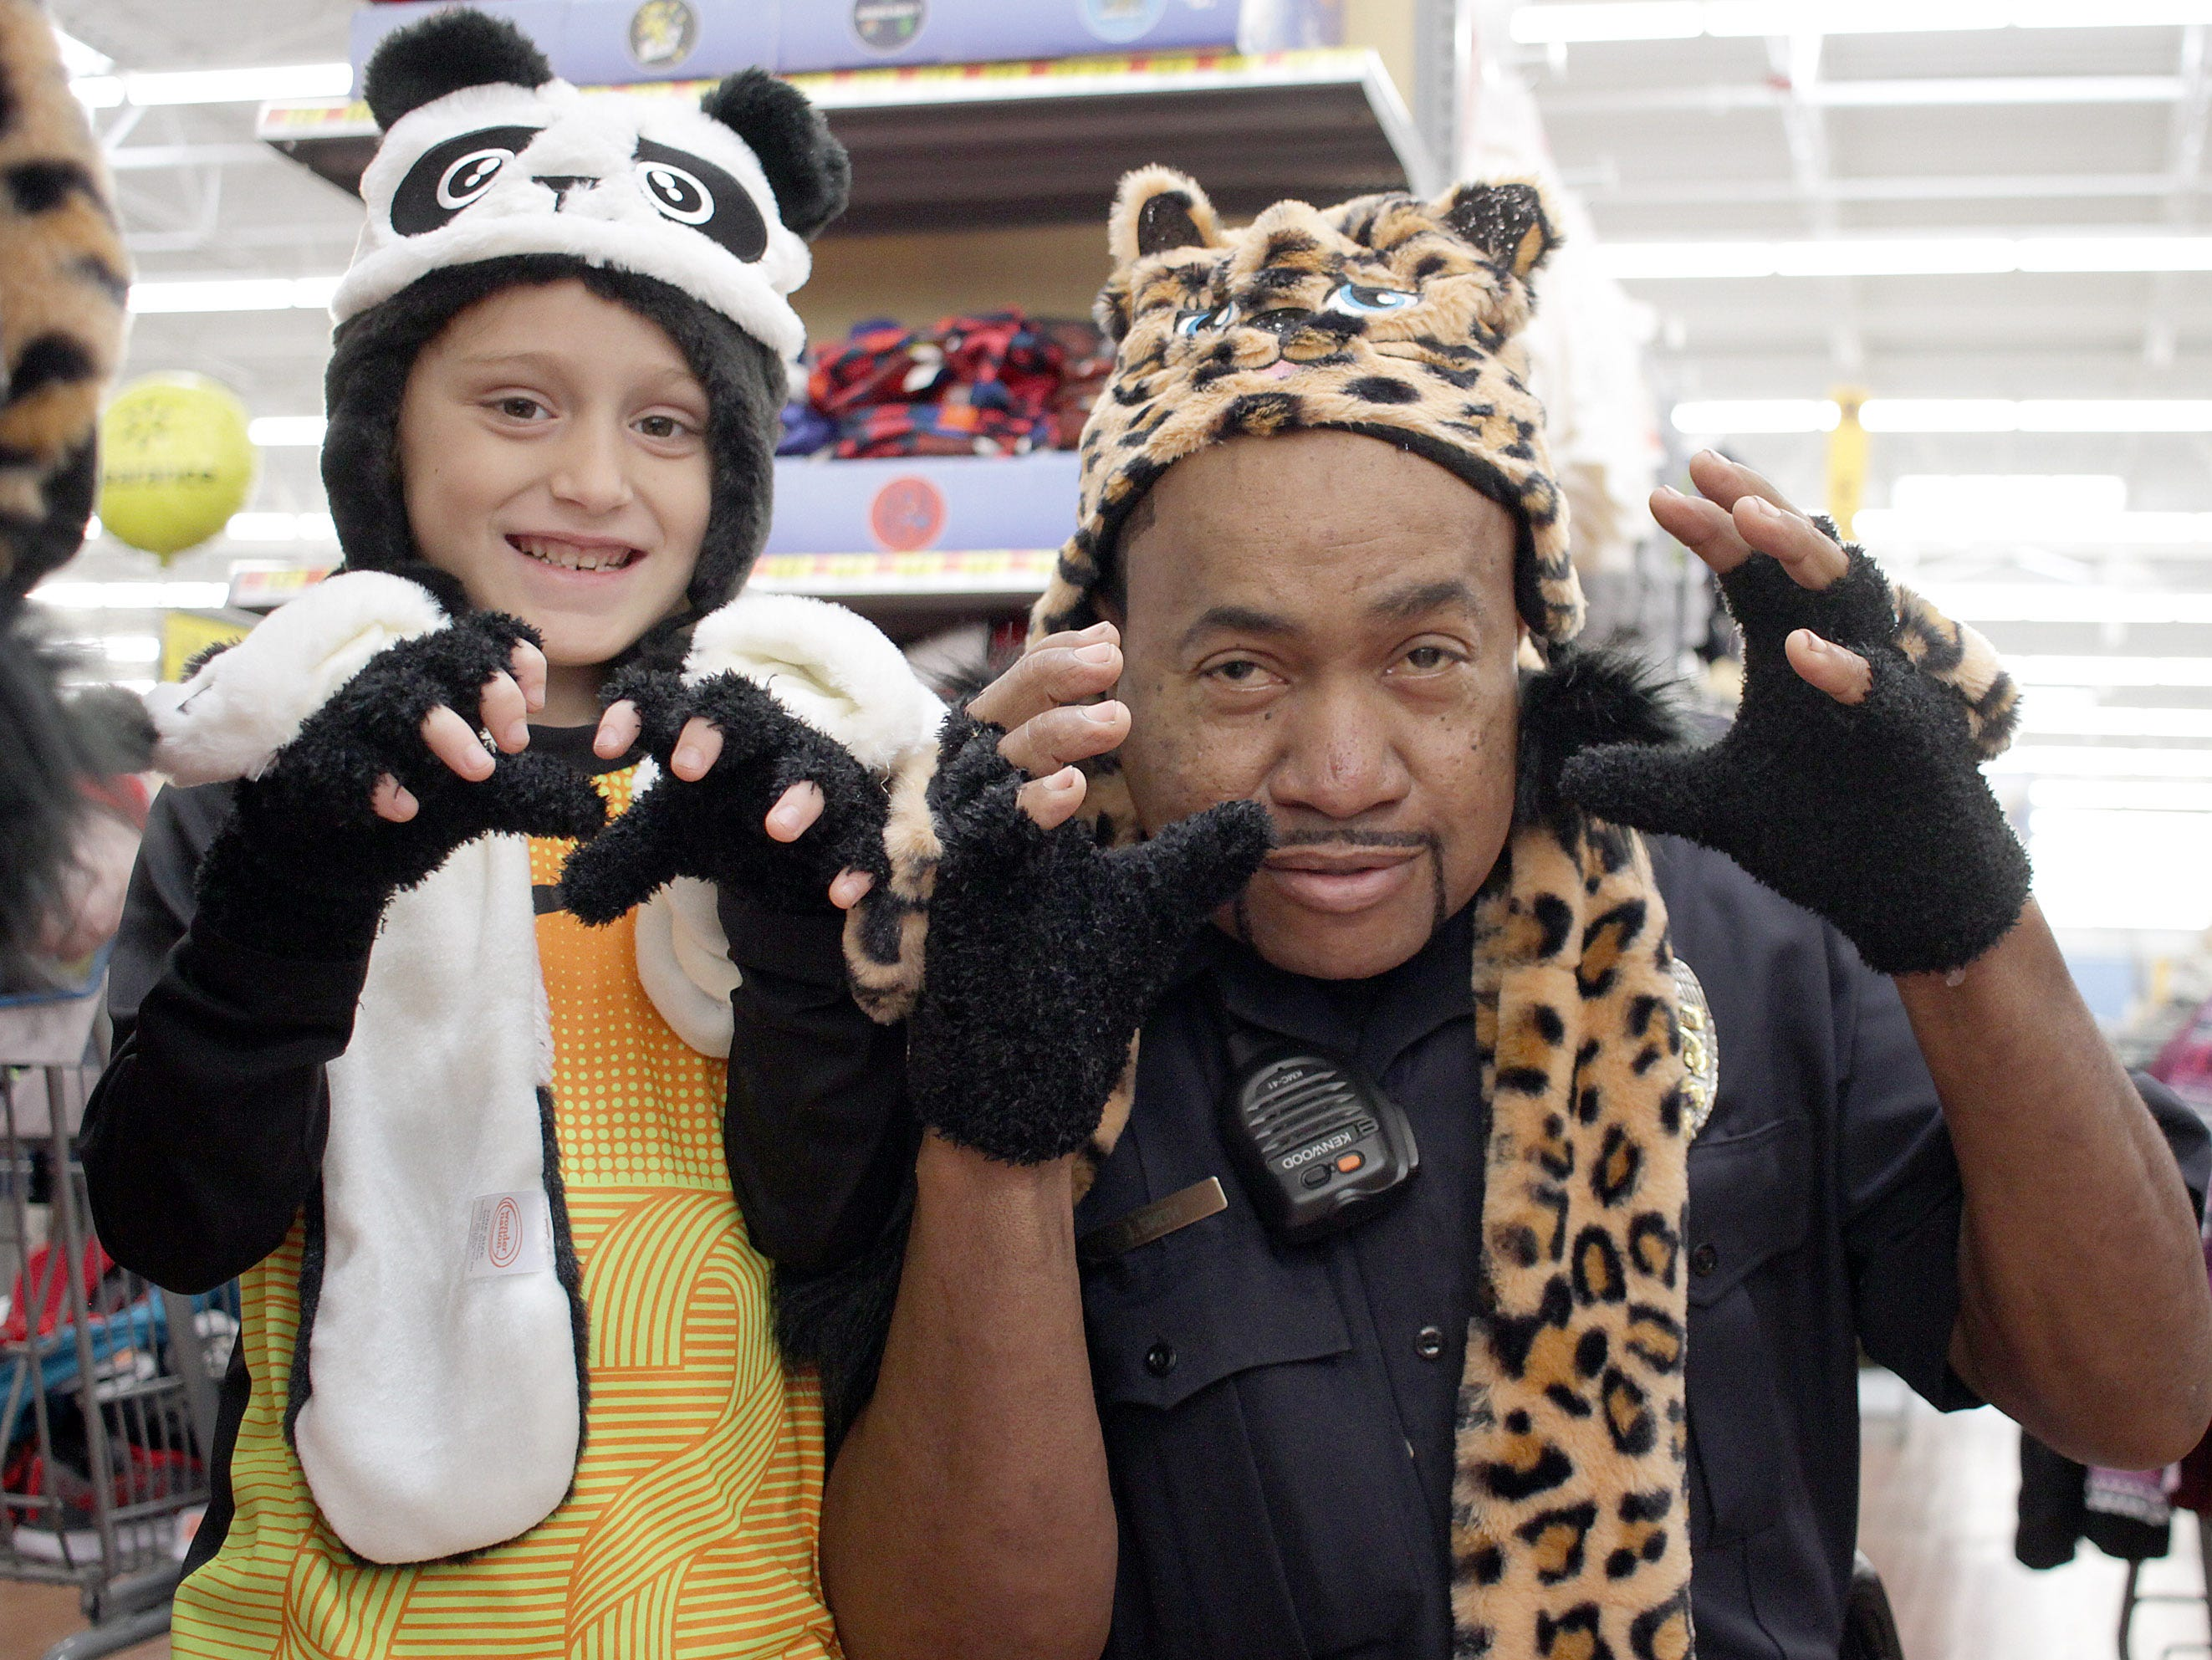 Richard Allens and Officer JT Smith show their claws during Shop with a Cop in Ashland City on Saturday, December 15, 2018.